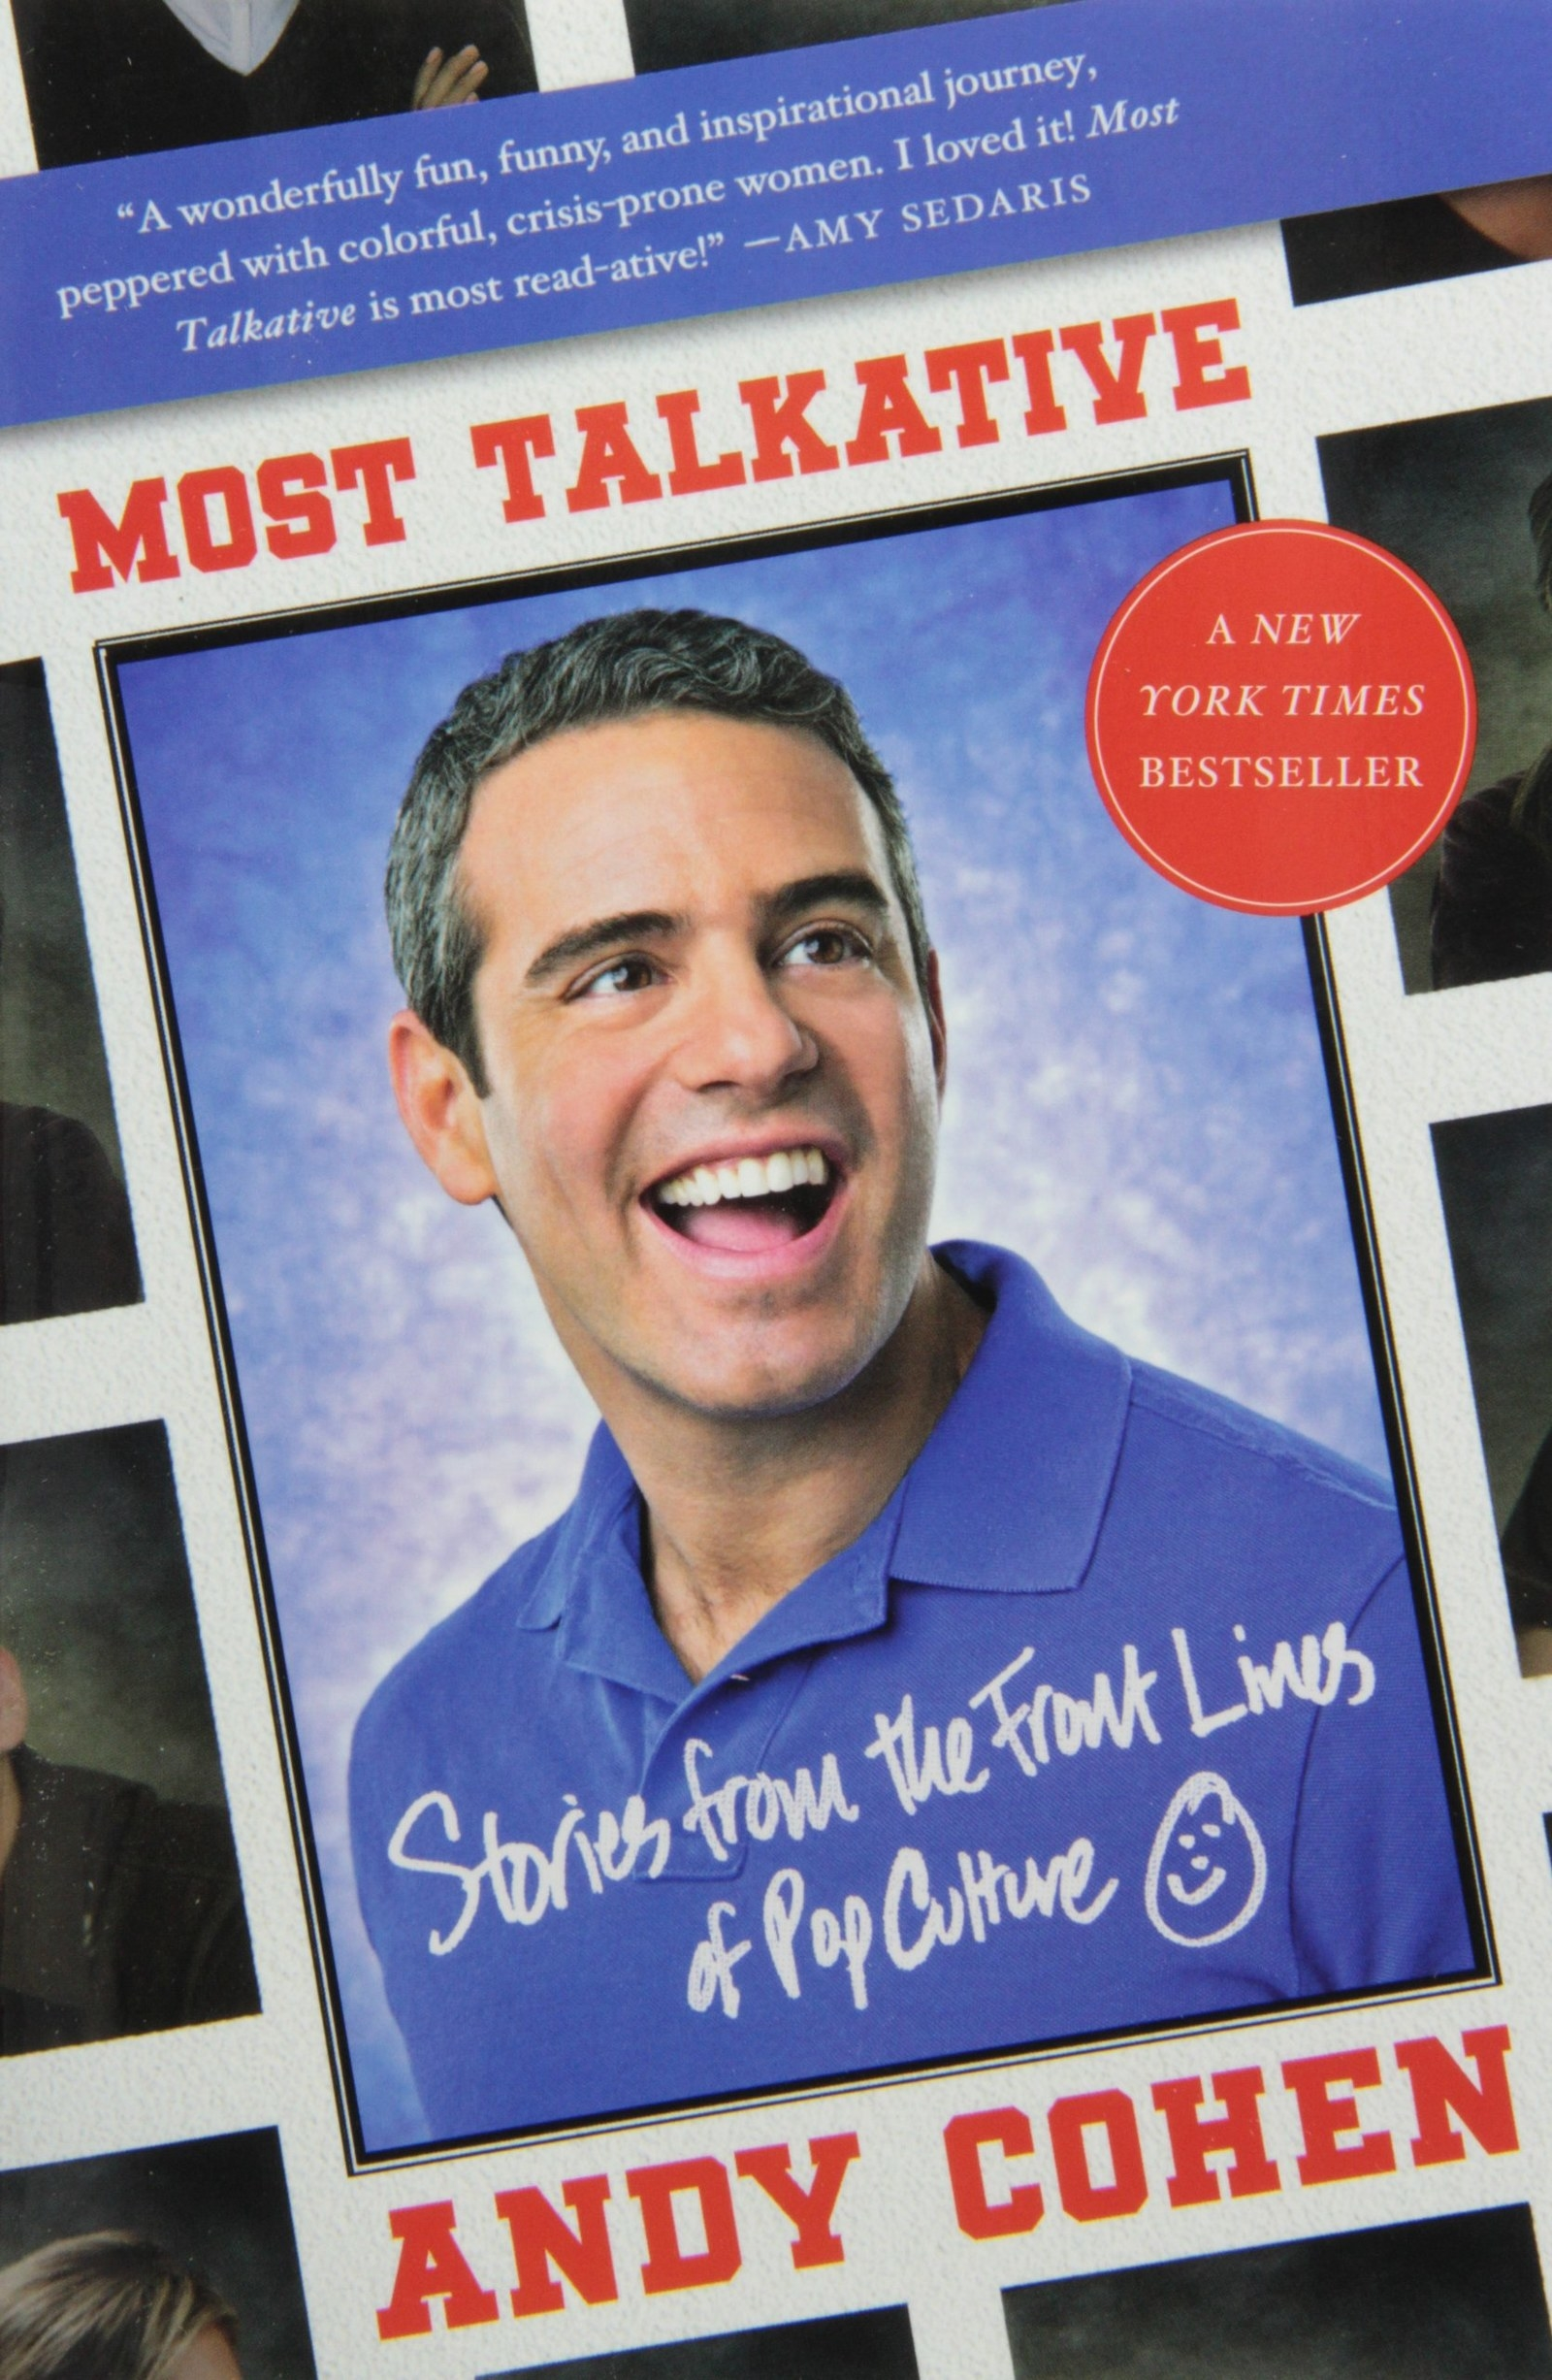 the cover of andy cohen's book